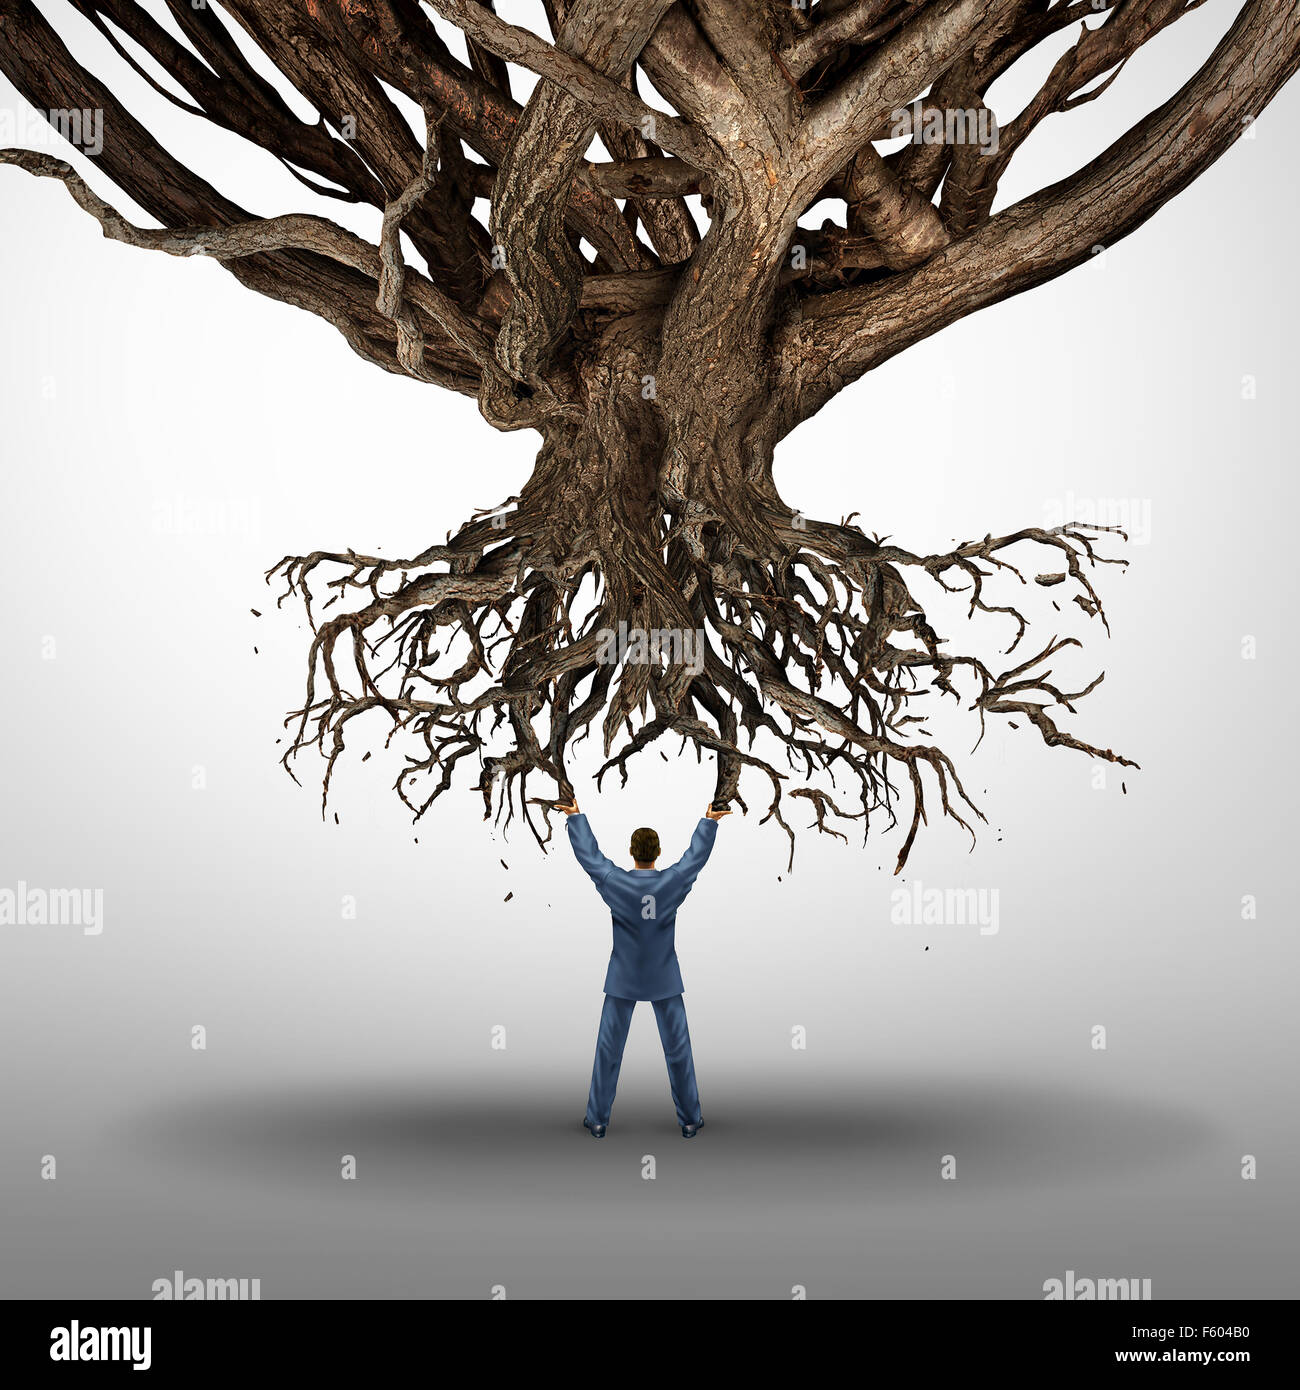 Uprooting and power concept and growt mamnagement symbol as a businessman holding up an uprooted tree as an icon - Stock Image